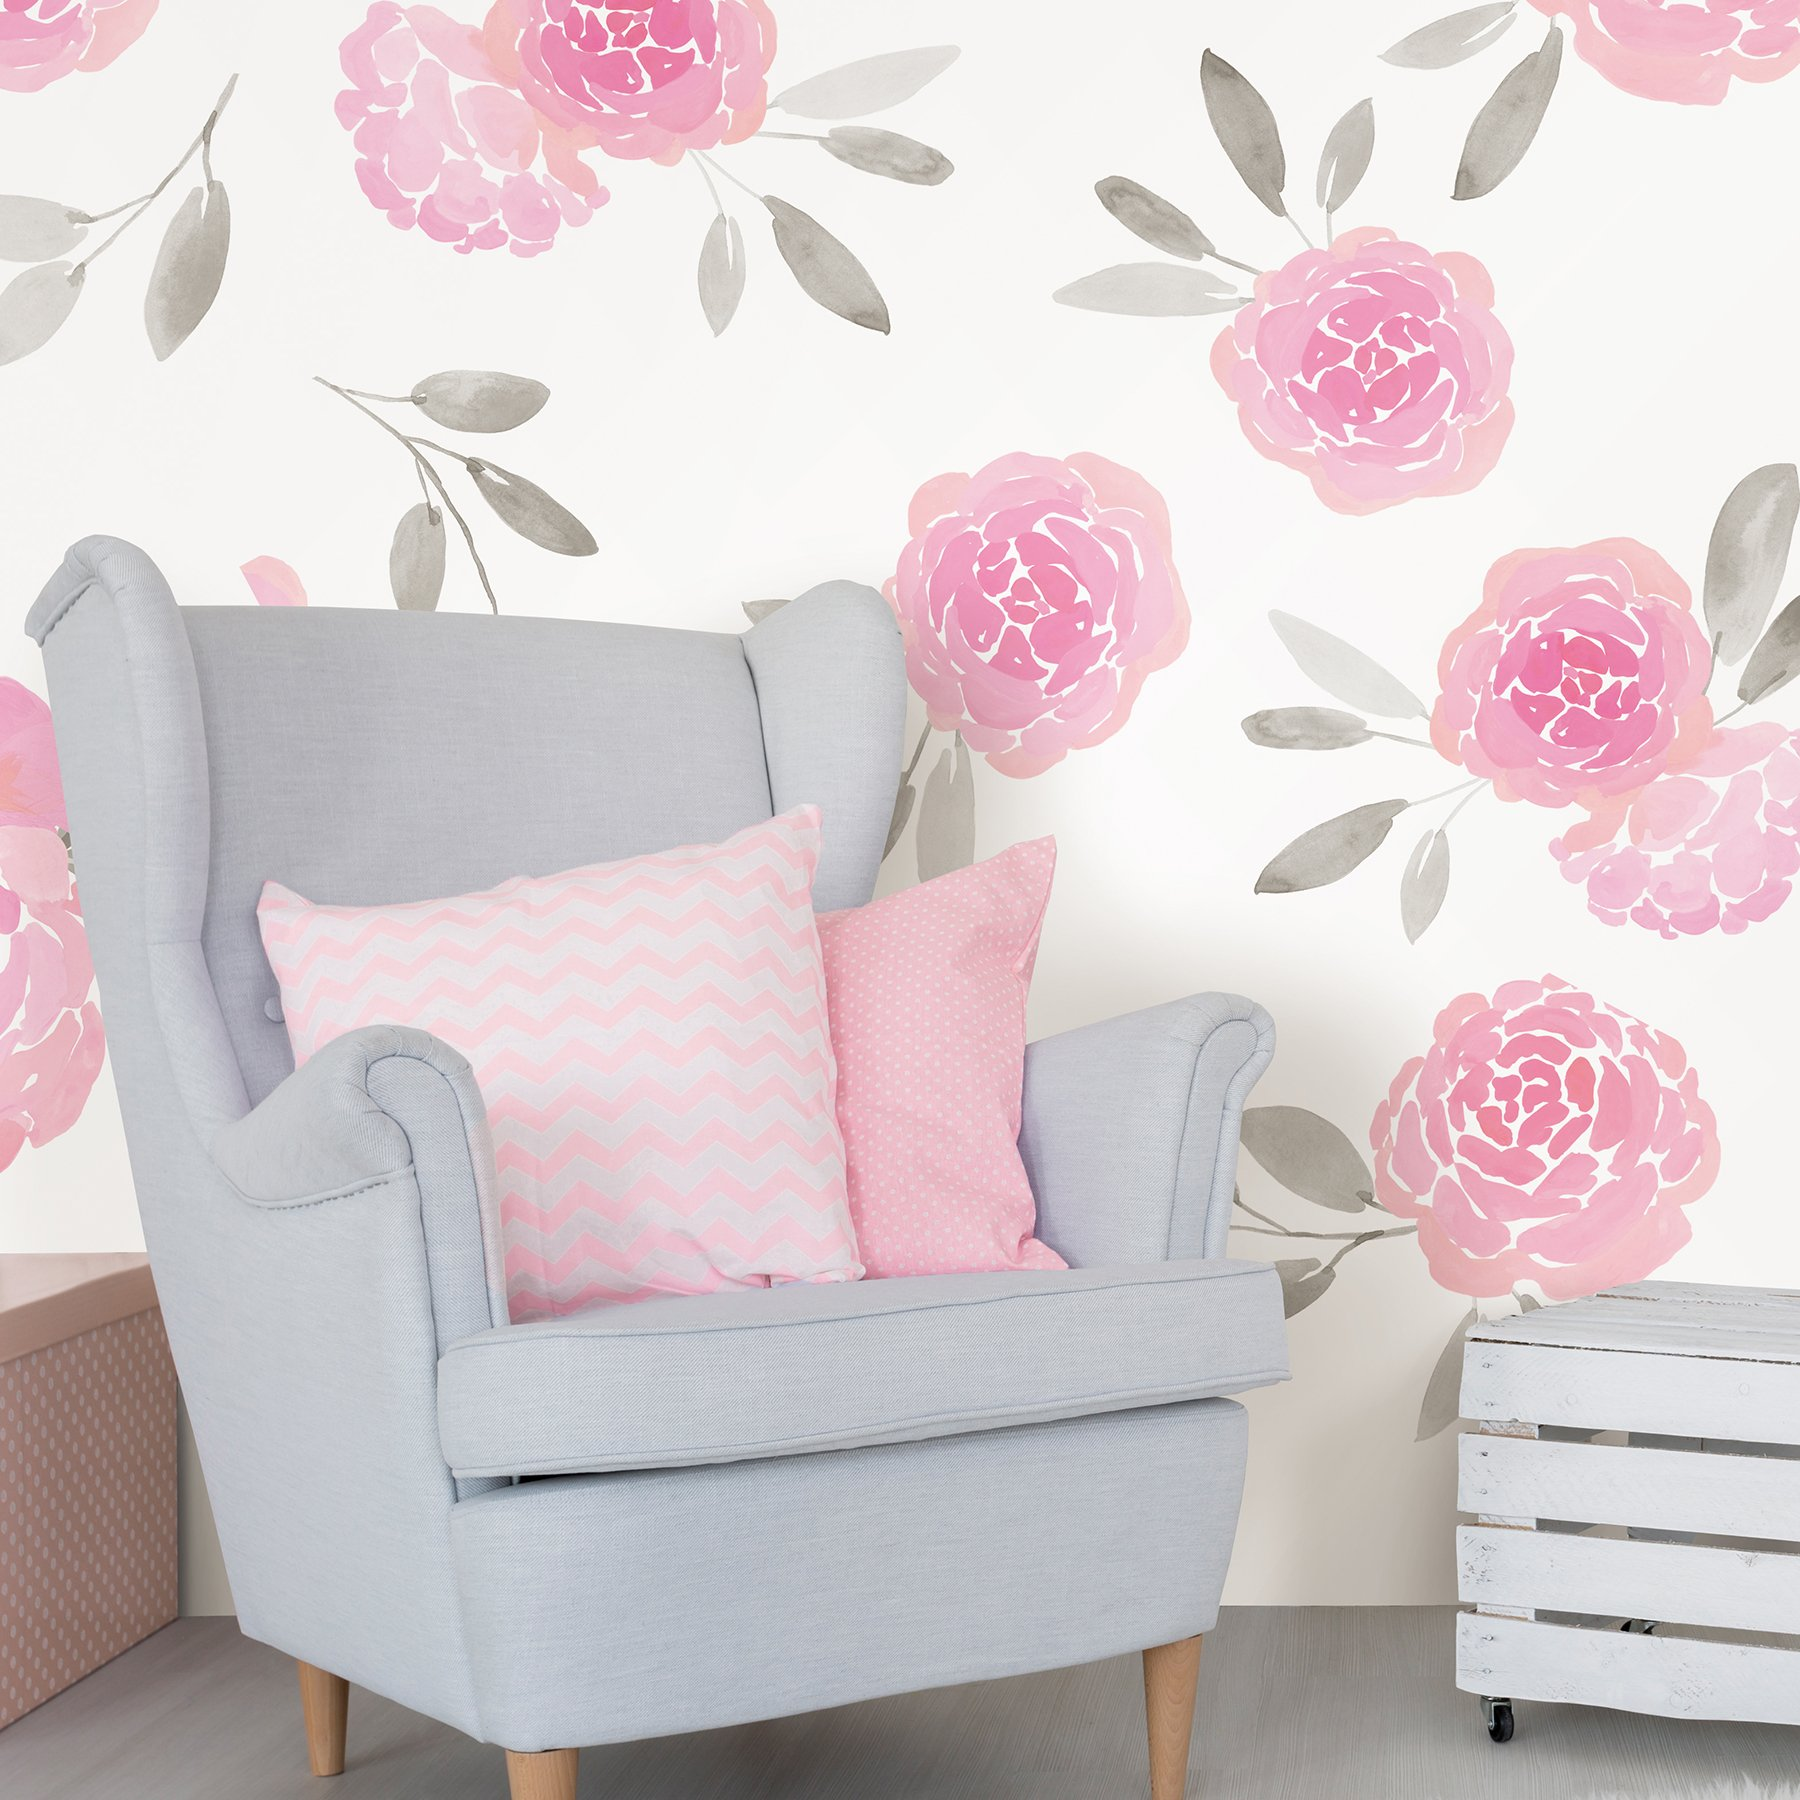 WallPops WPK2458 May Flowers Wall Art Kit Pink by Wall Pops (Image #2)